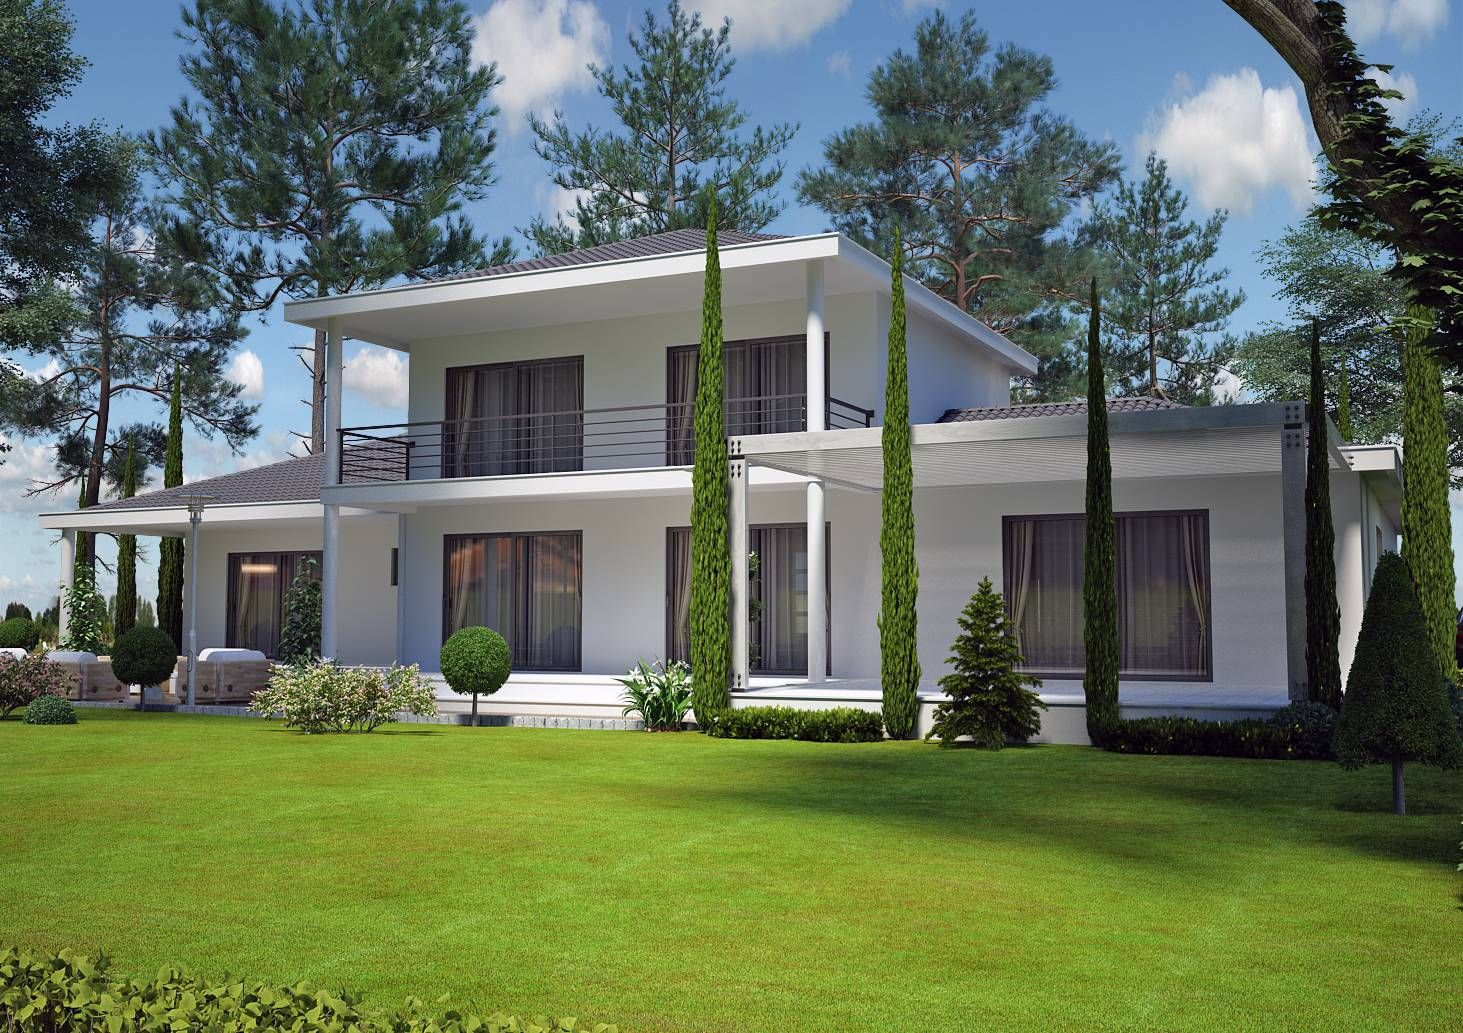 Villa contemporaine 150 m2 etage mod le pinede salon for Plan ancienne maison